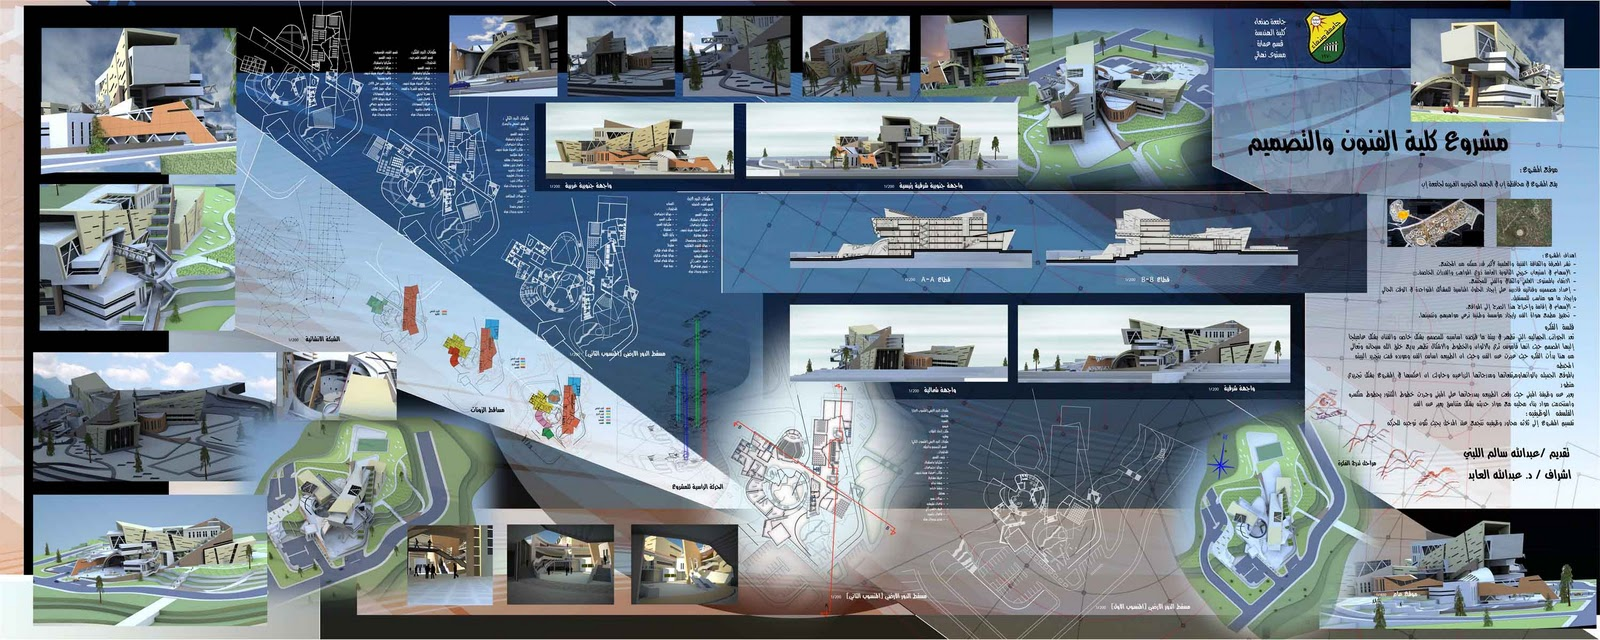 architectural design projects arch2o nazareth oliver shalabi poster 1 1